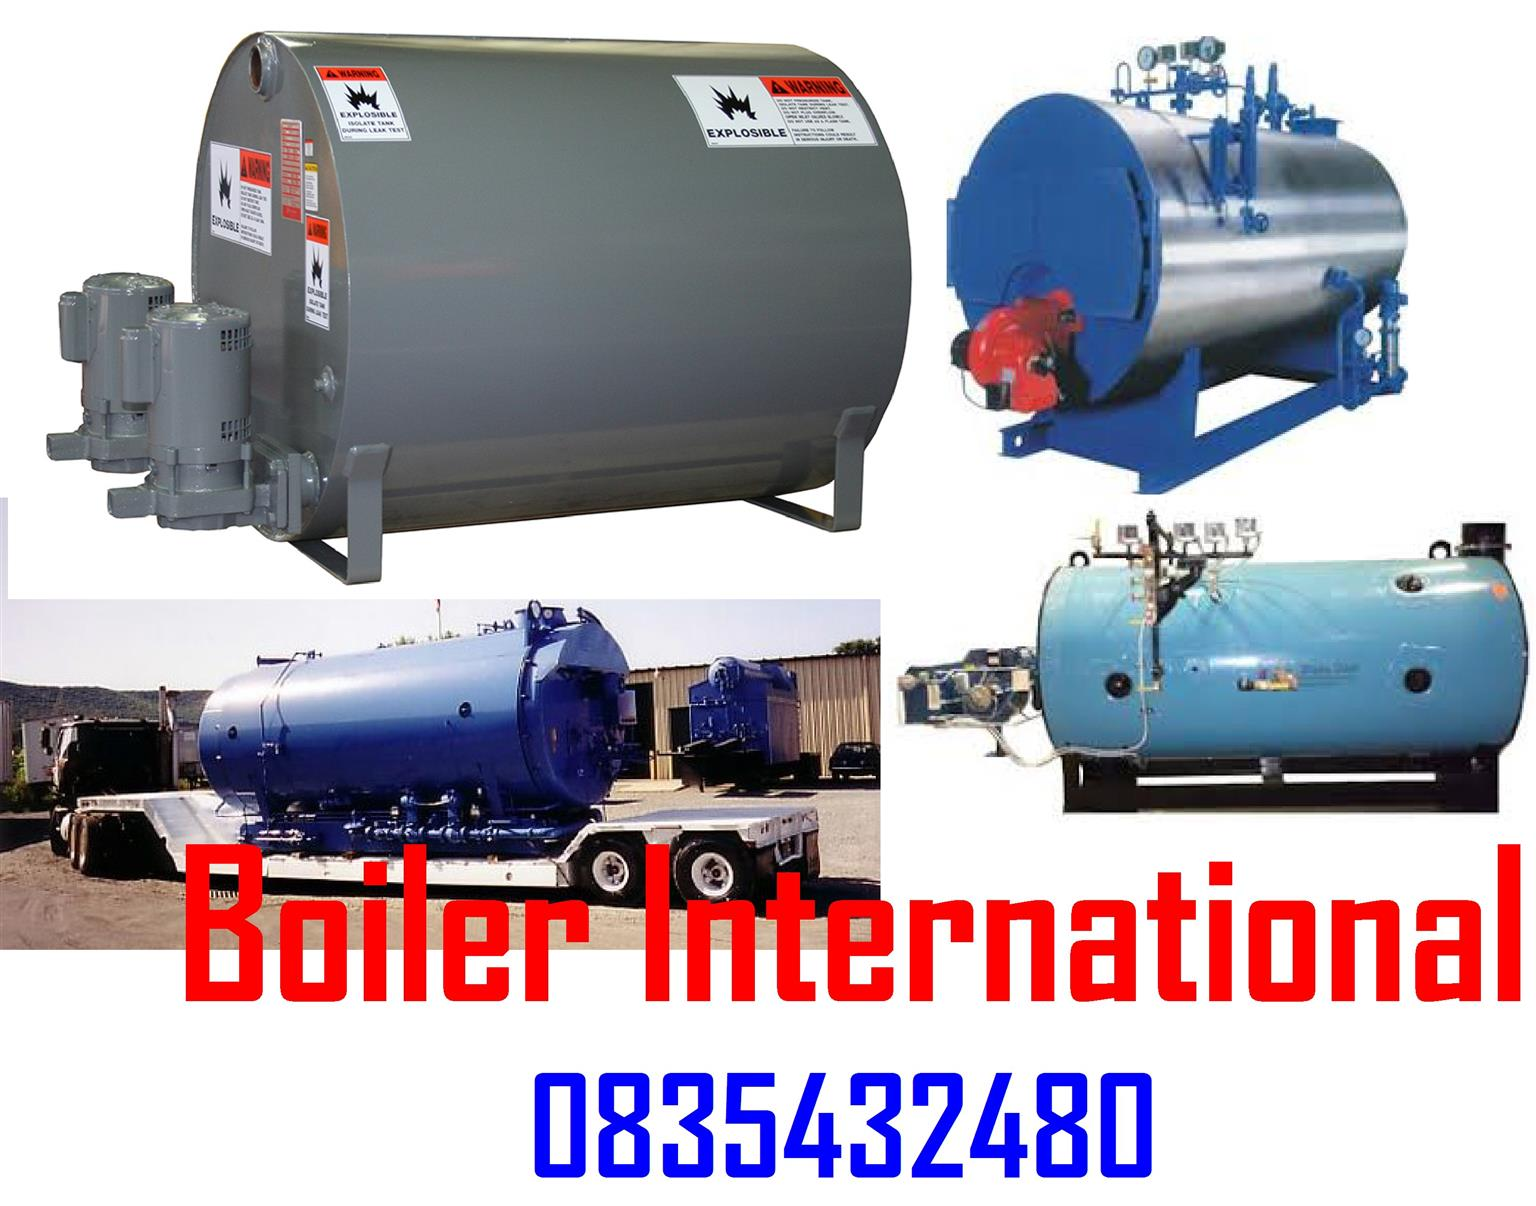 NEED A BOILER - Boilers made to your specifications